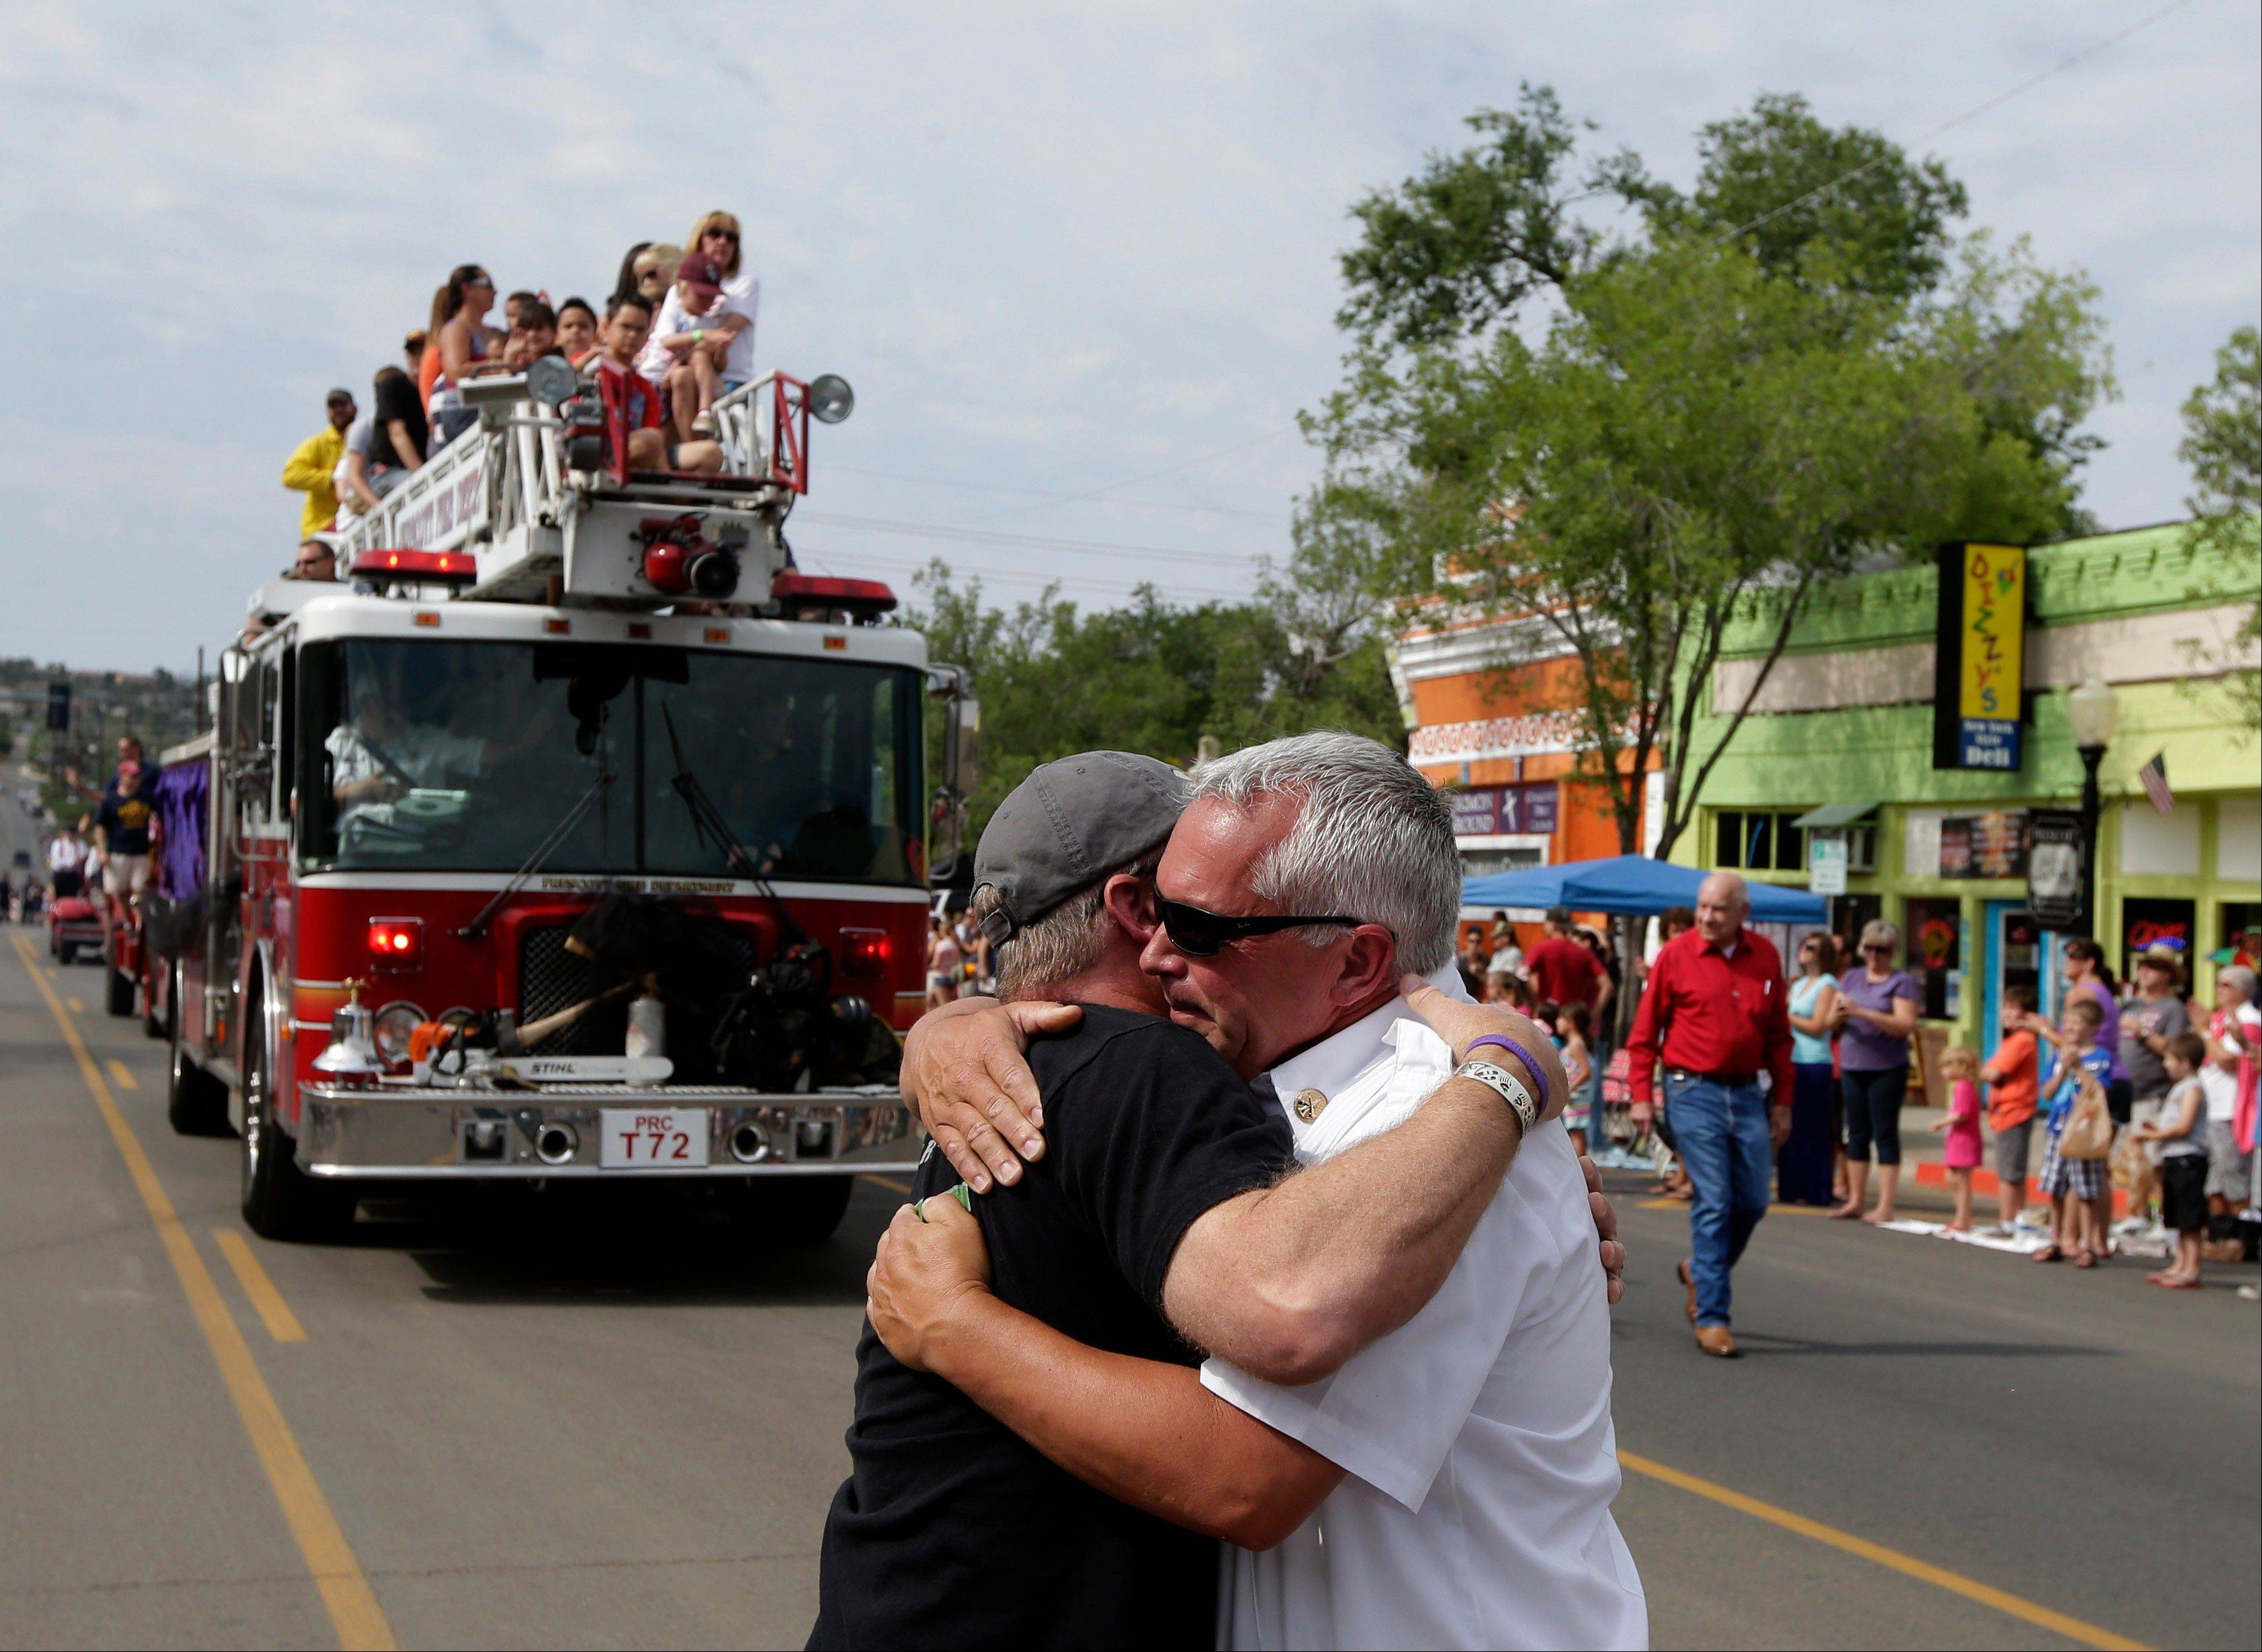 Associated PressPrescott Fire Marshal Don Devendorf, right, is hugged by Robert Gill as a fire truck carrying friends and family members of Granite Mountain Interagency Hotshot Crew rides in Prescott Frontier Days Rodeo Parade Saturday, July 6, in Prescott, Ariz. The firefighters were killed battling a wildfire near Yarnell, Ariz., Sunday, June 30.